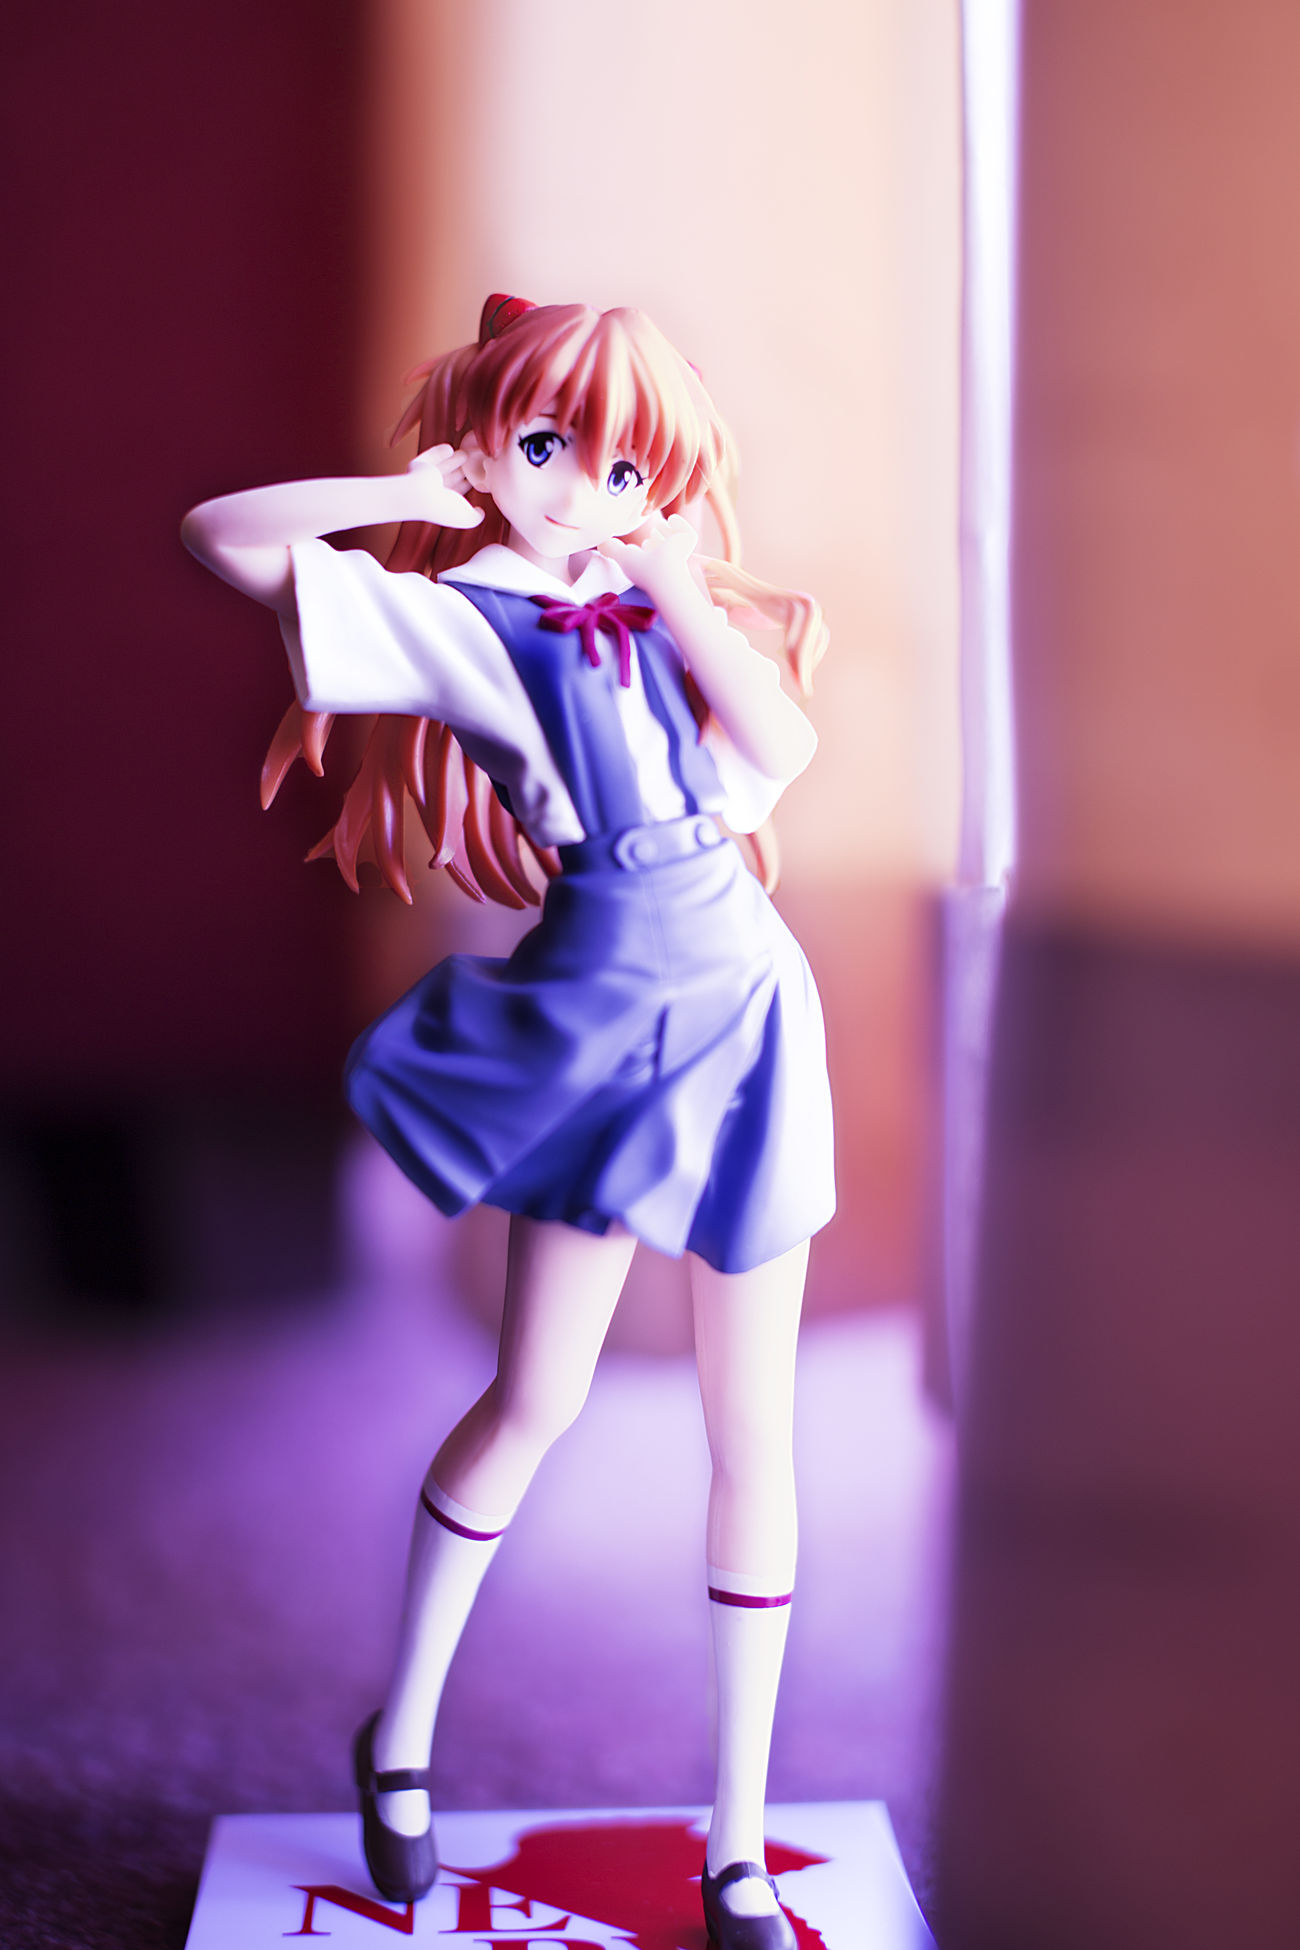 Colorful Eva Girls Childhood Uniform Only Girls Futuristic Indoors  Blond Hair Shadow Arts Old-fashioned Check This Out No People Comics Japan Adult Eva Reality Mind  Natural Beauty Figure Inside Things Impression Funny Moments